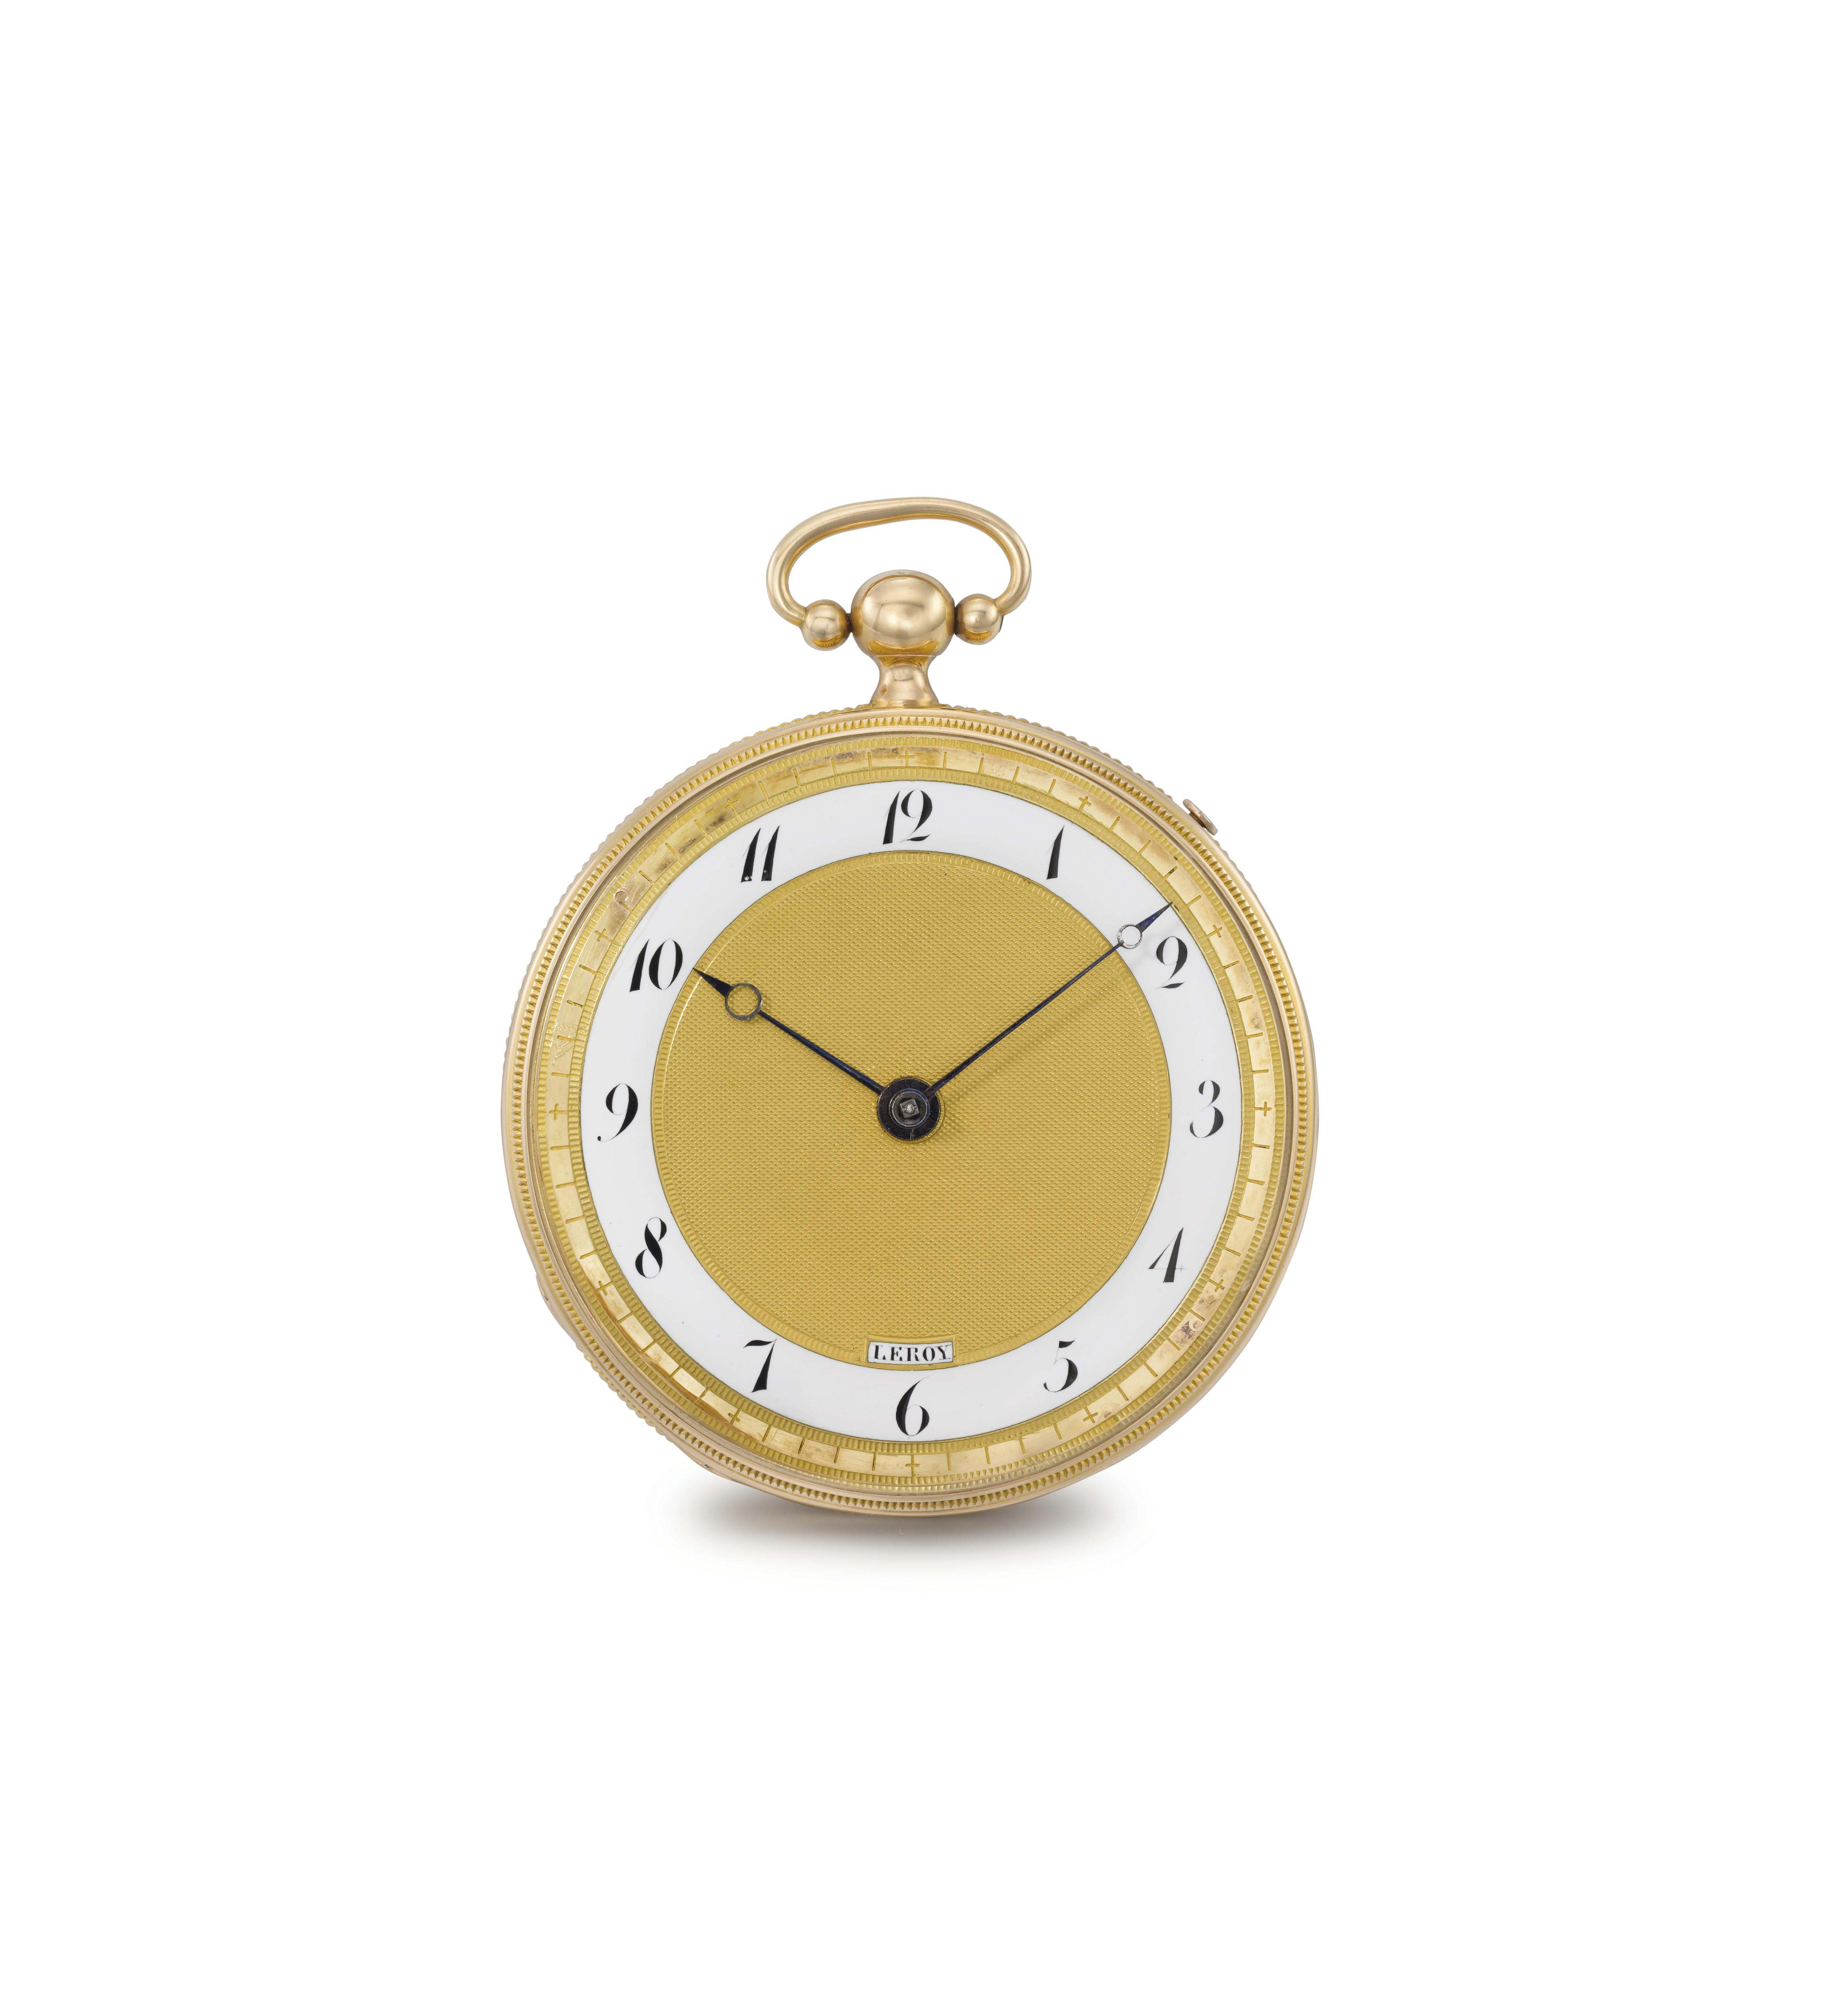 Leroy. An unusual 18K gold openface quarter repeating cylinder watch